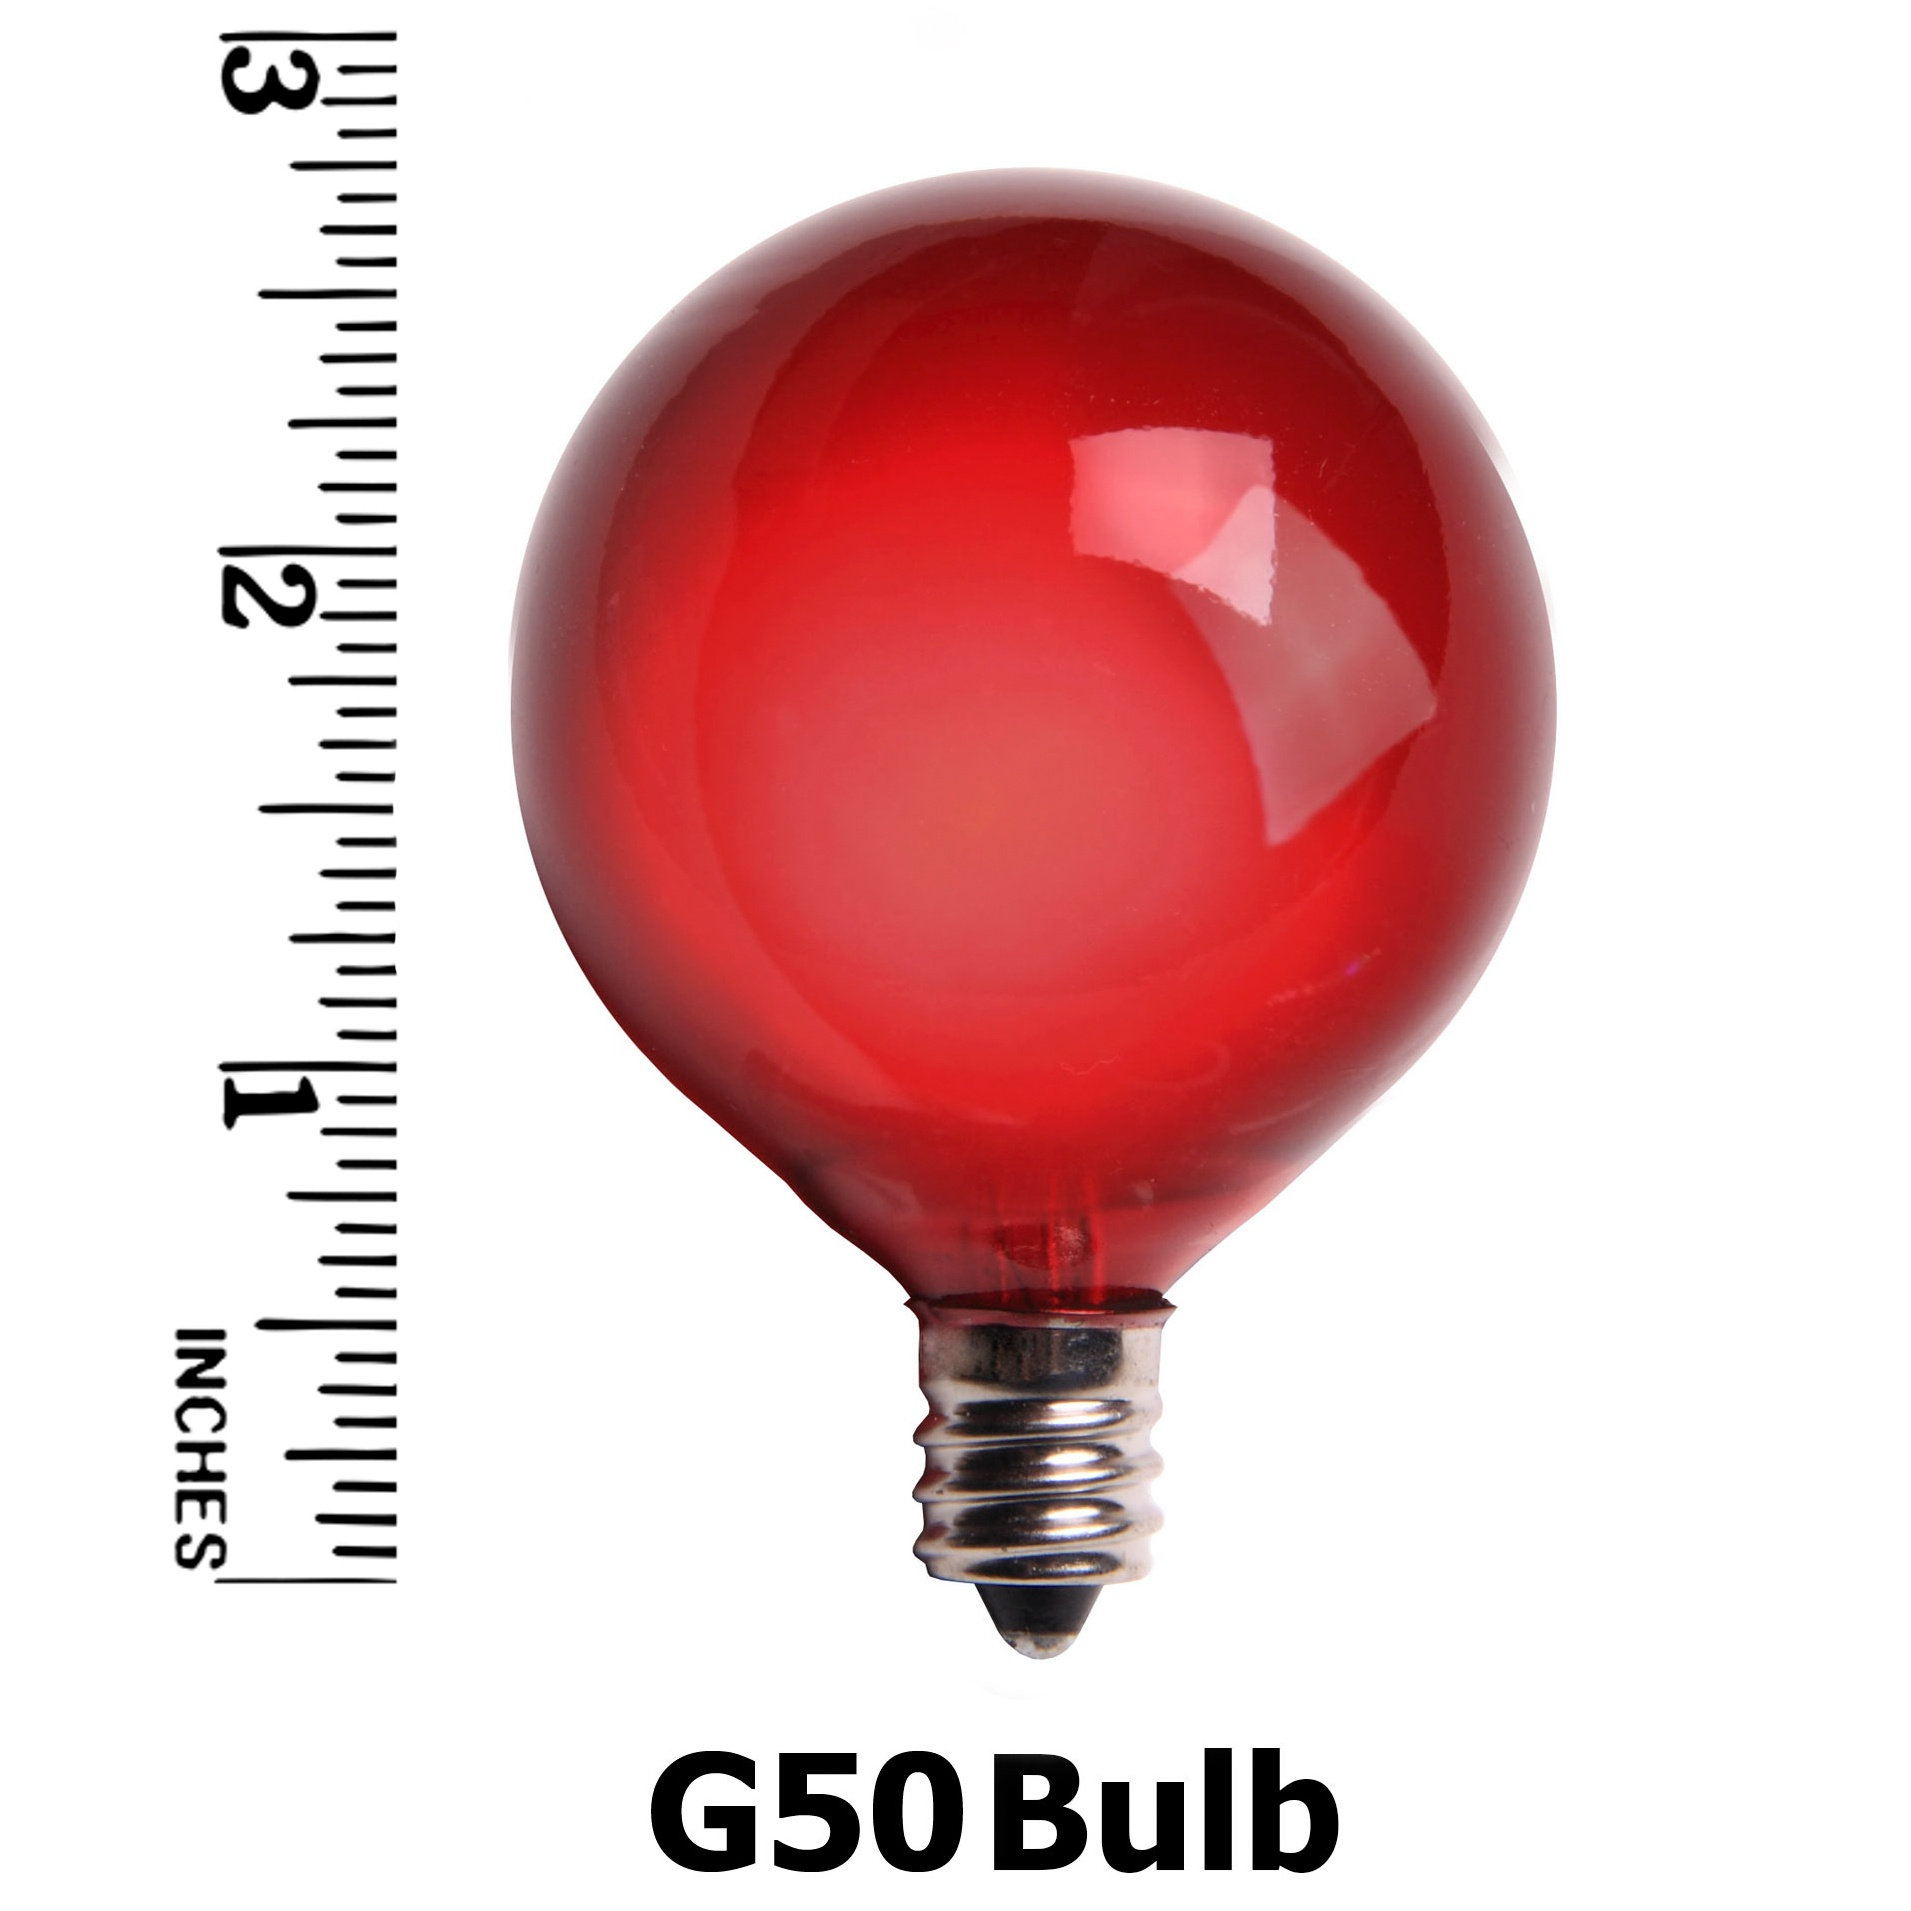 G50 E12 Bulb Measurement